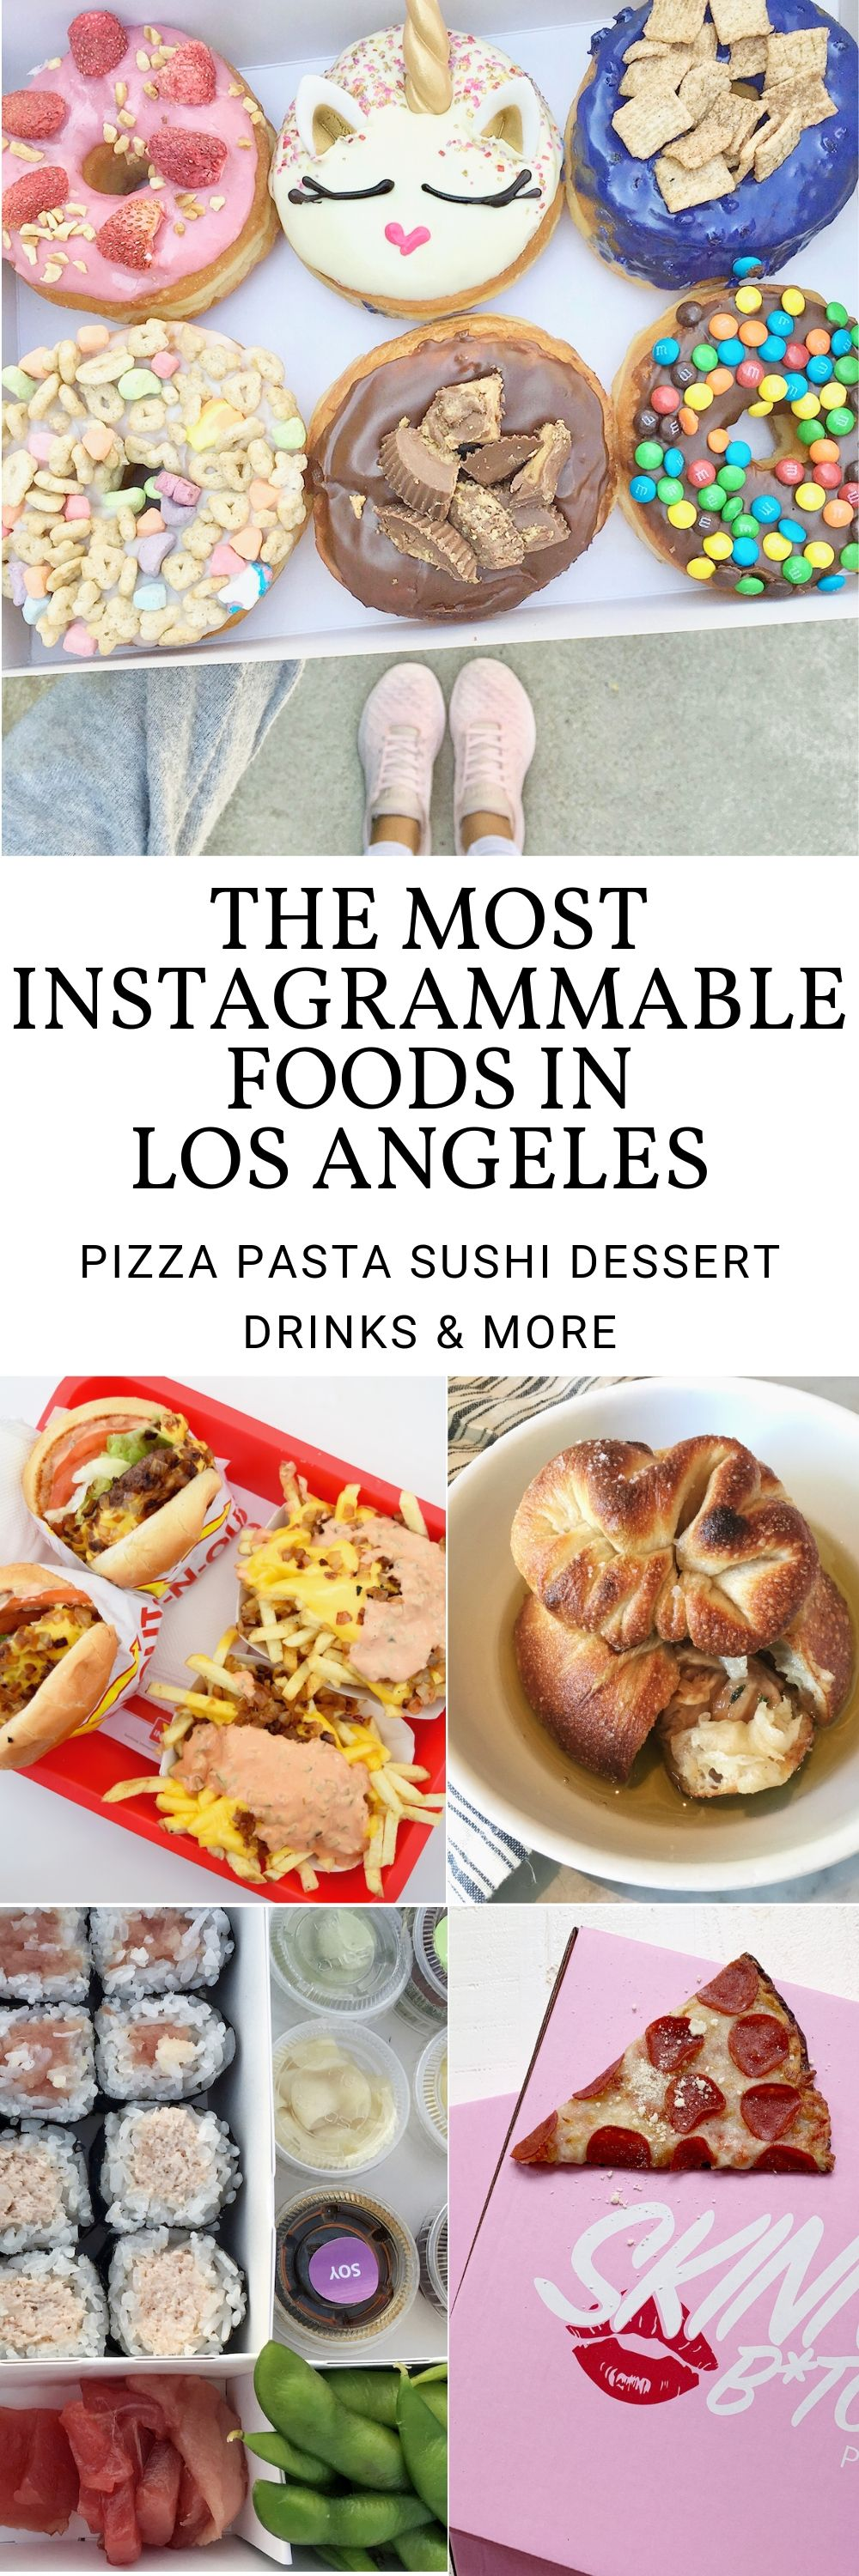 the most instagrammable foods in los angeles